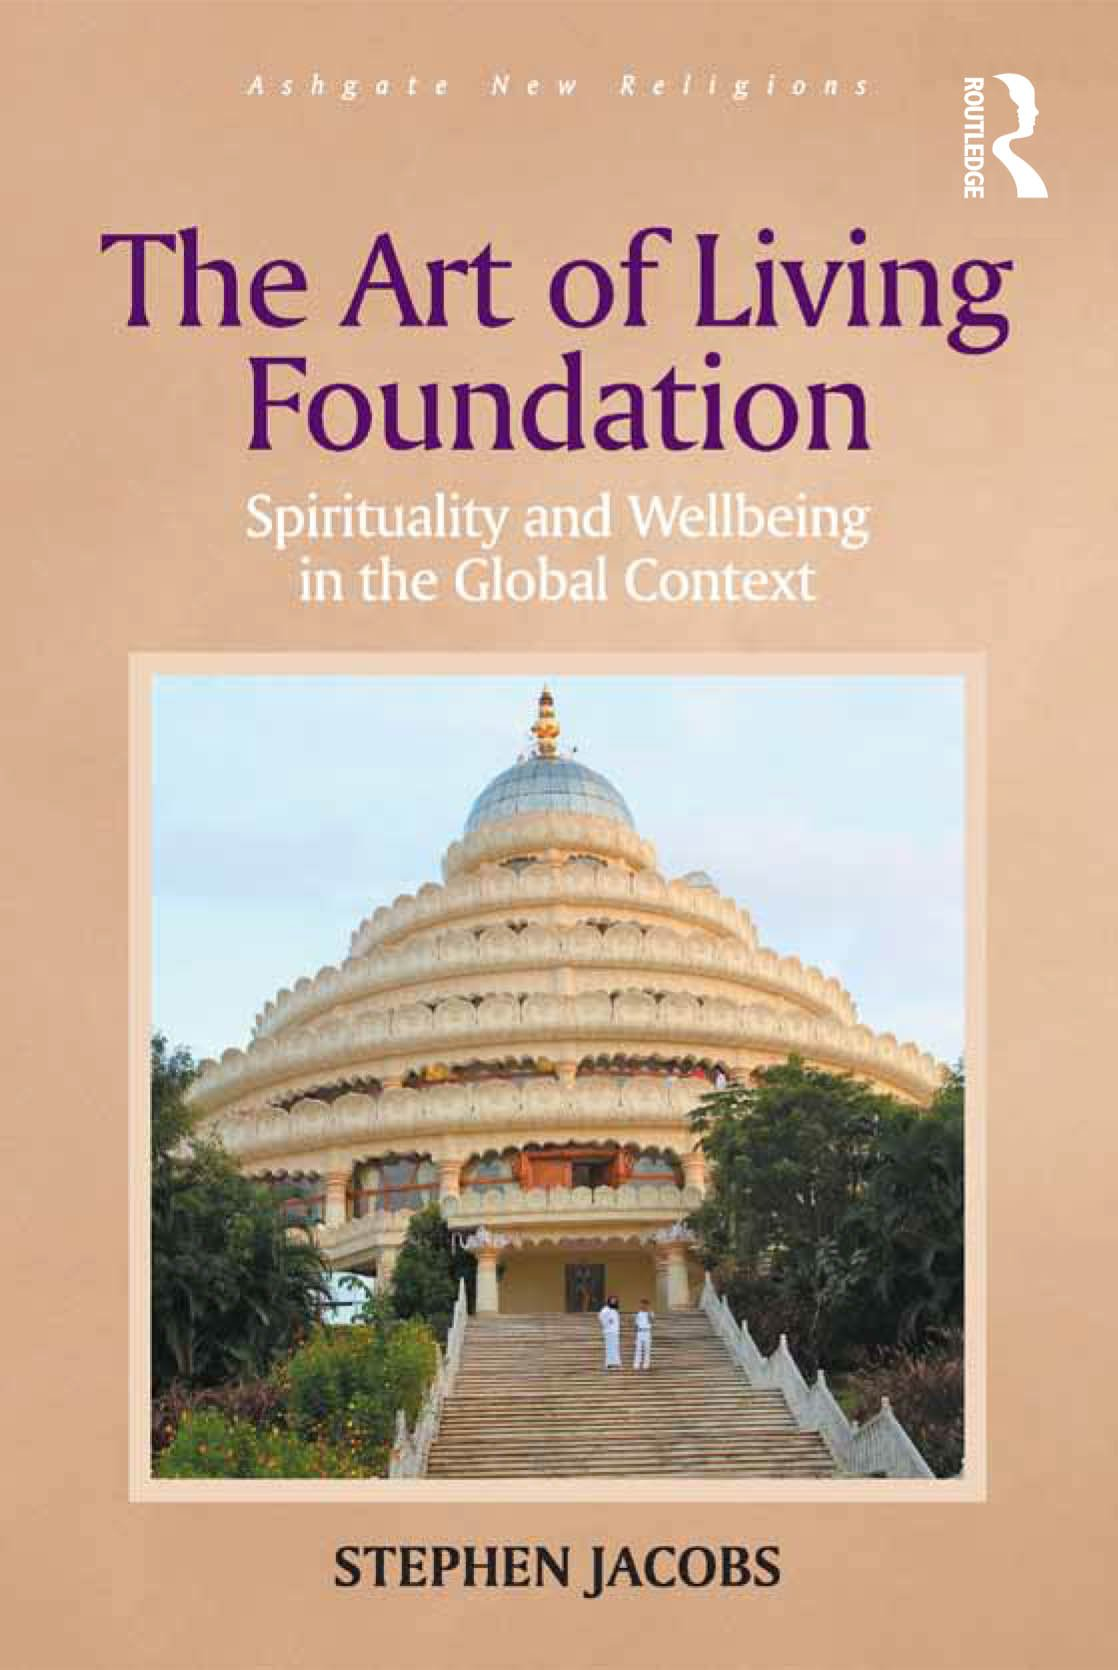 The Art Of Living Foundation  Spirituality And Wellbeing In The Global Context  Routledge New Religions   English Edition